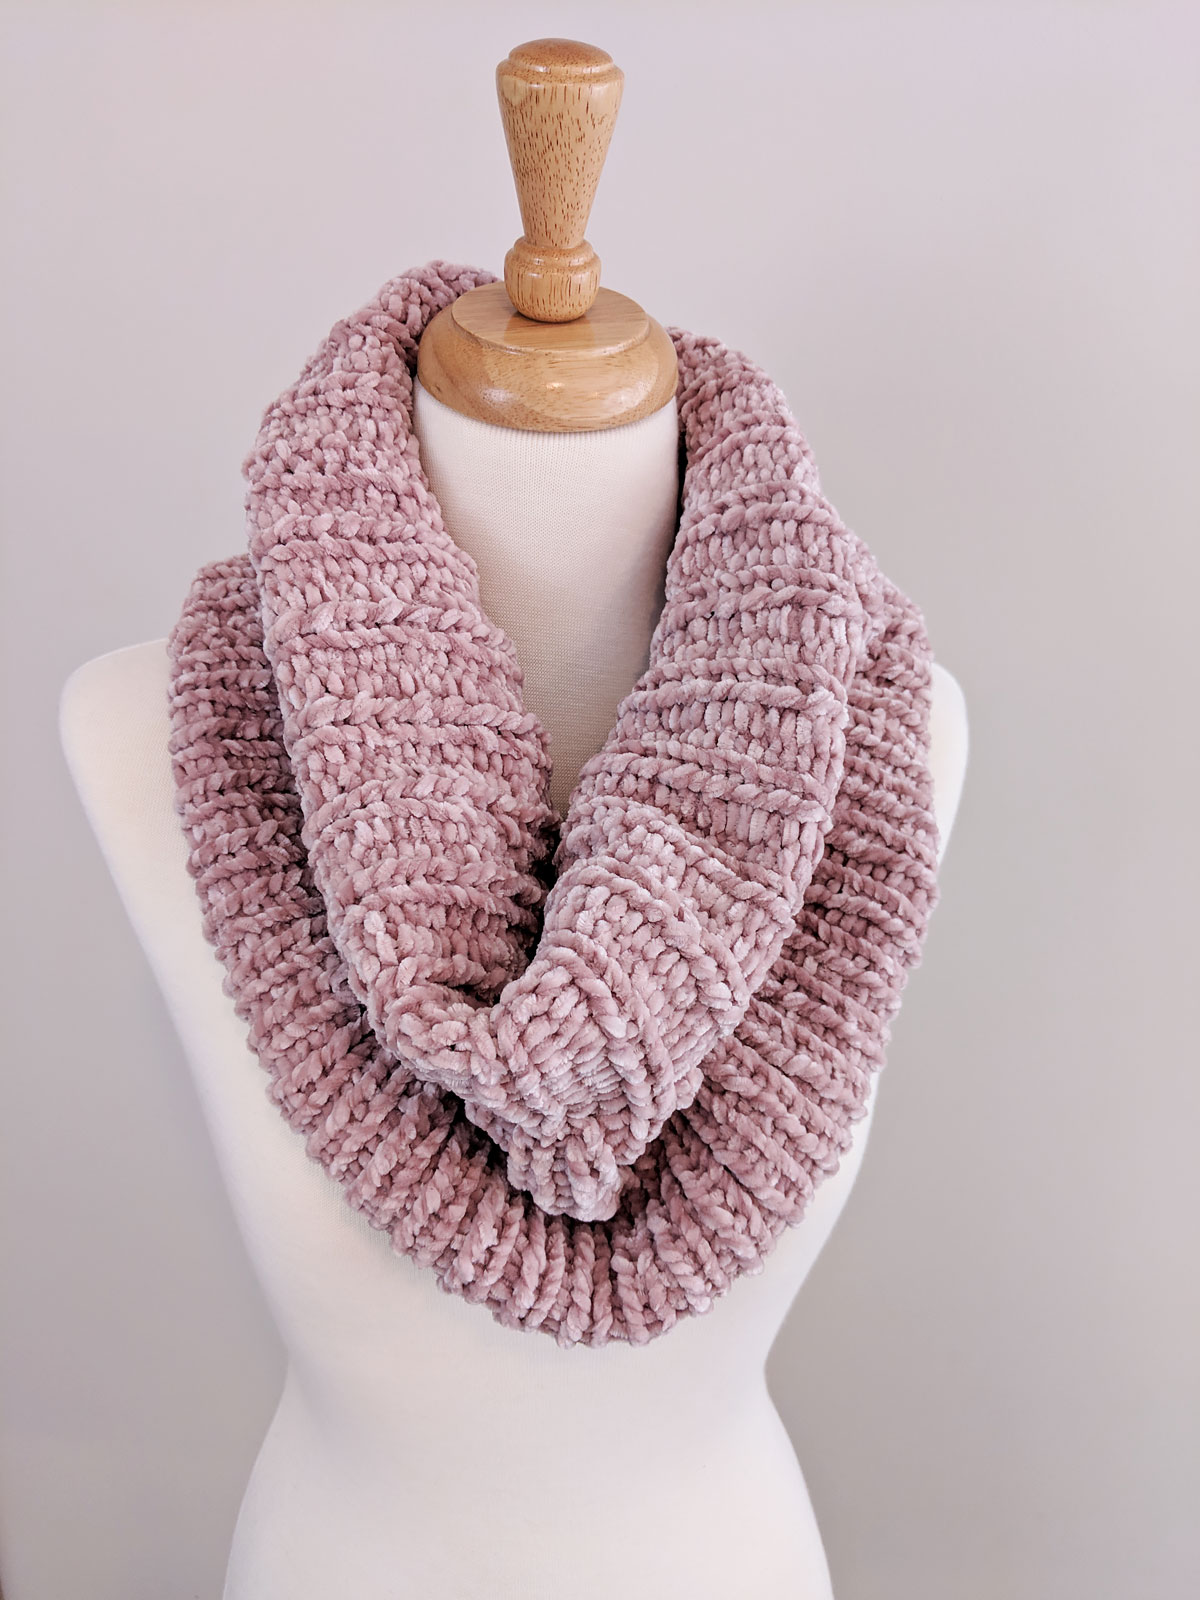 Ribbed Velvet Knit Cowl - Free Pattern - Just Be Crafty